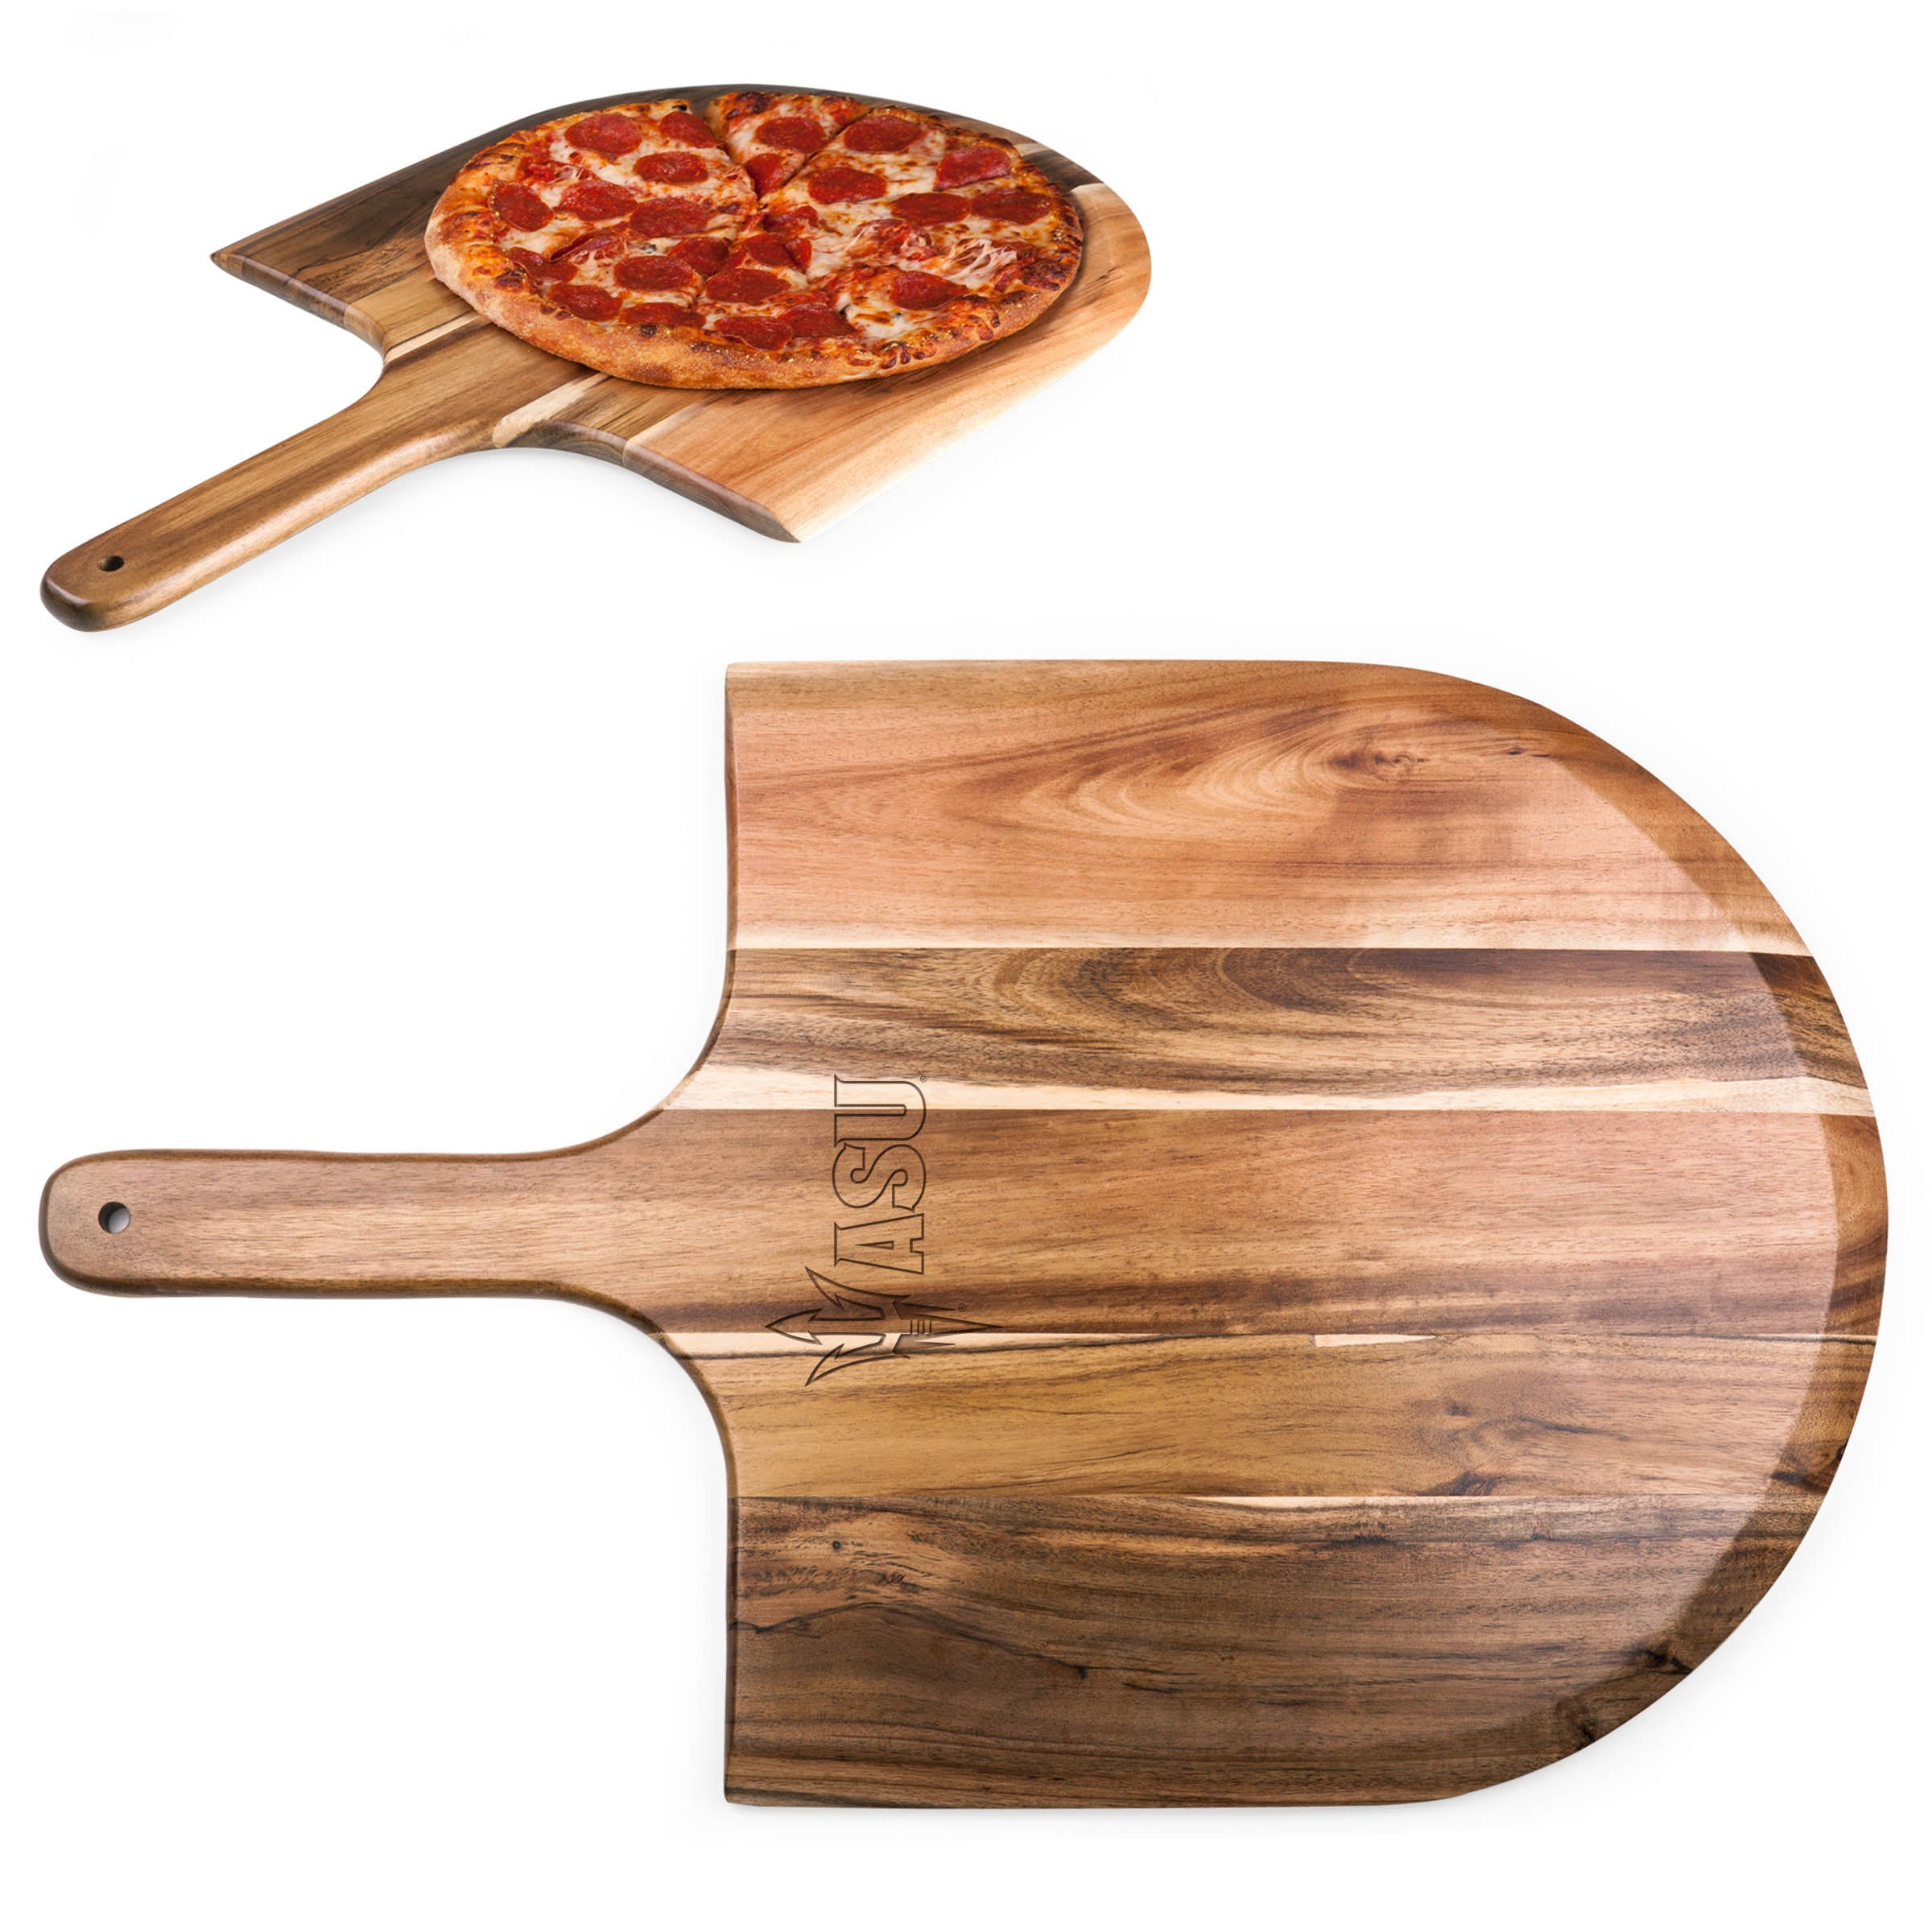 Arizona State Sun Devils 'Acacia Pizza Peel' Serving Paddle-Natural Wood Laser Engraving